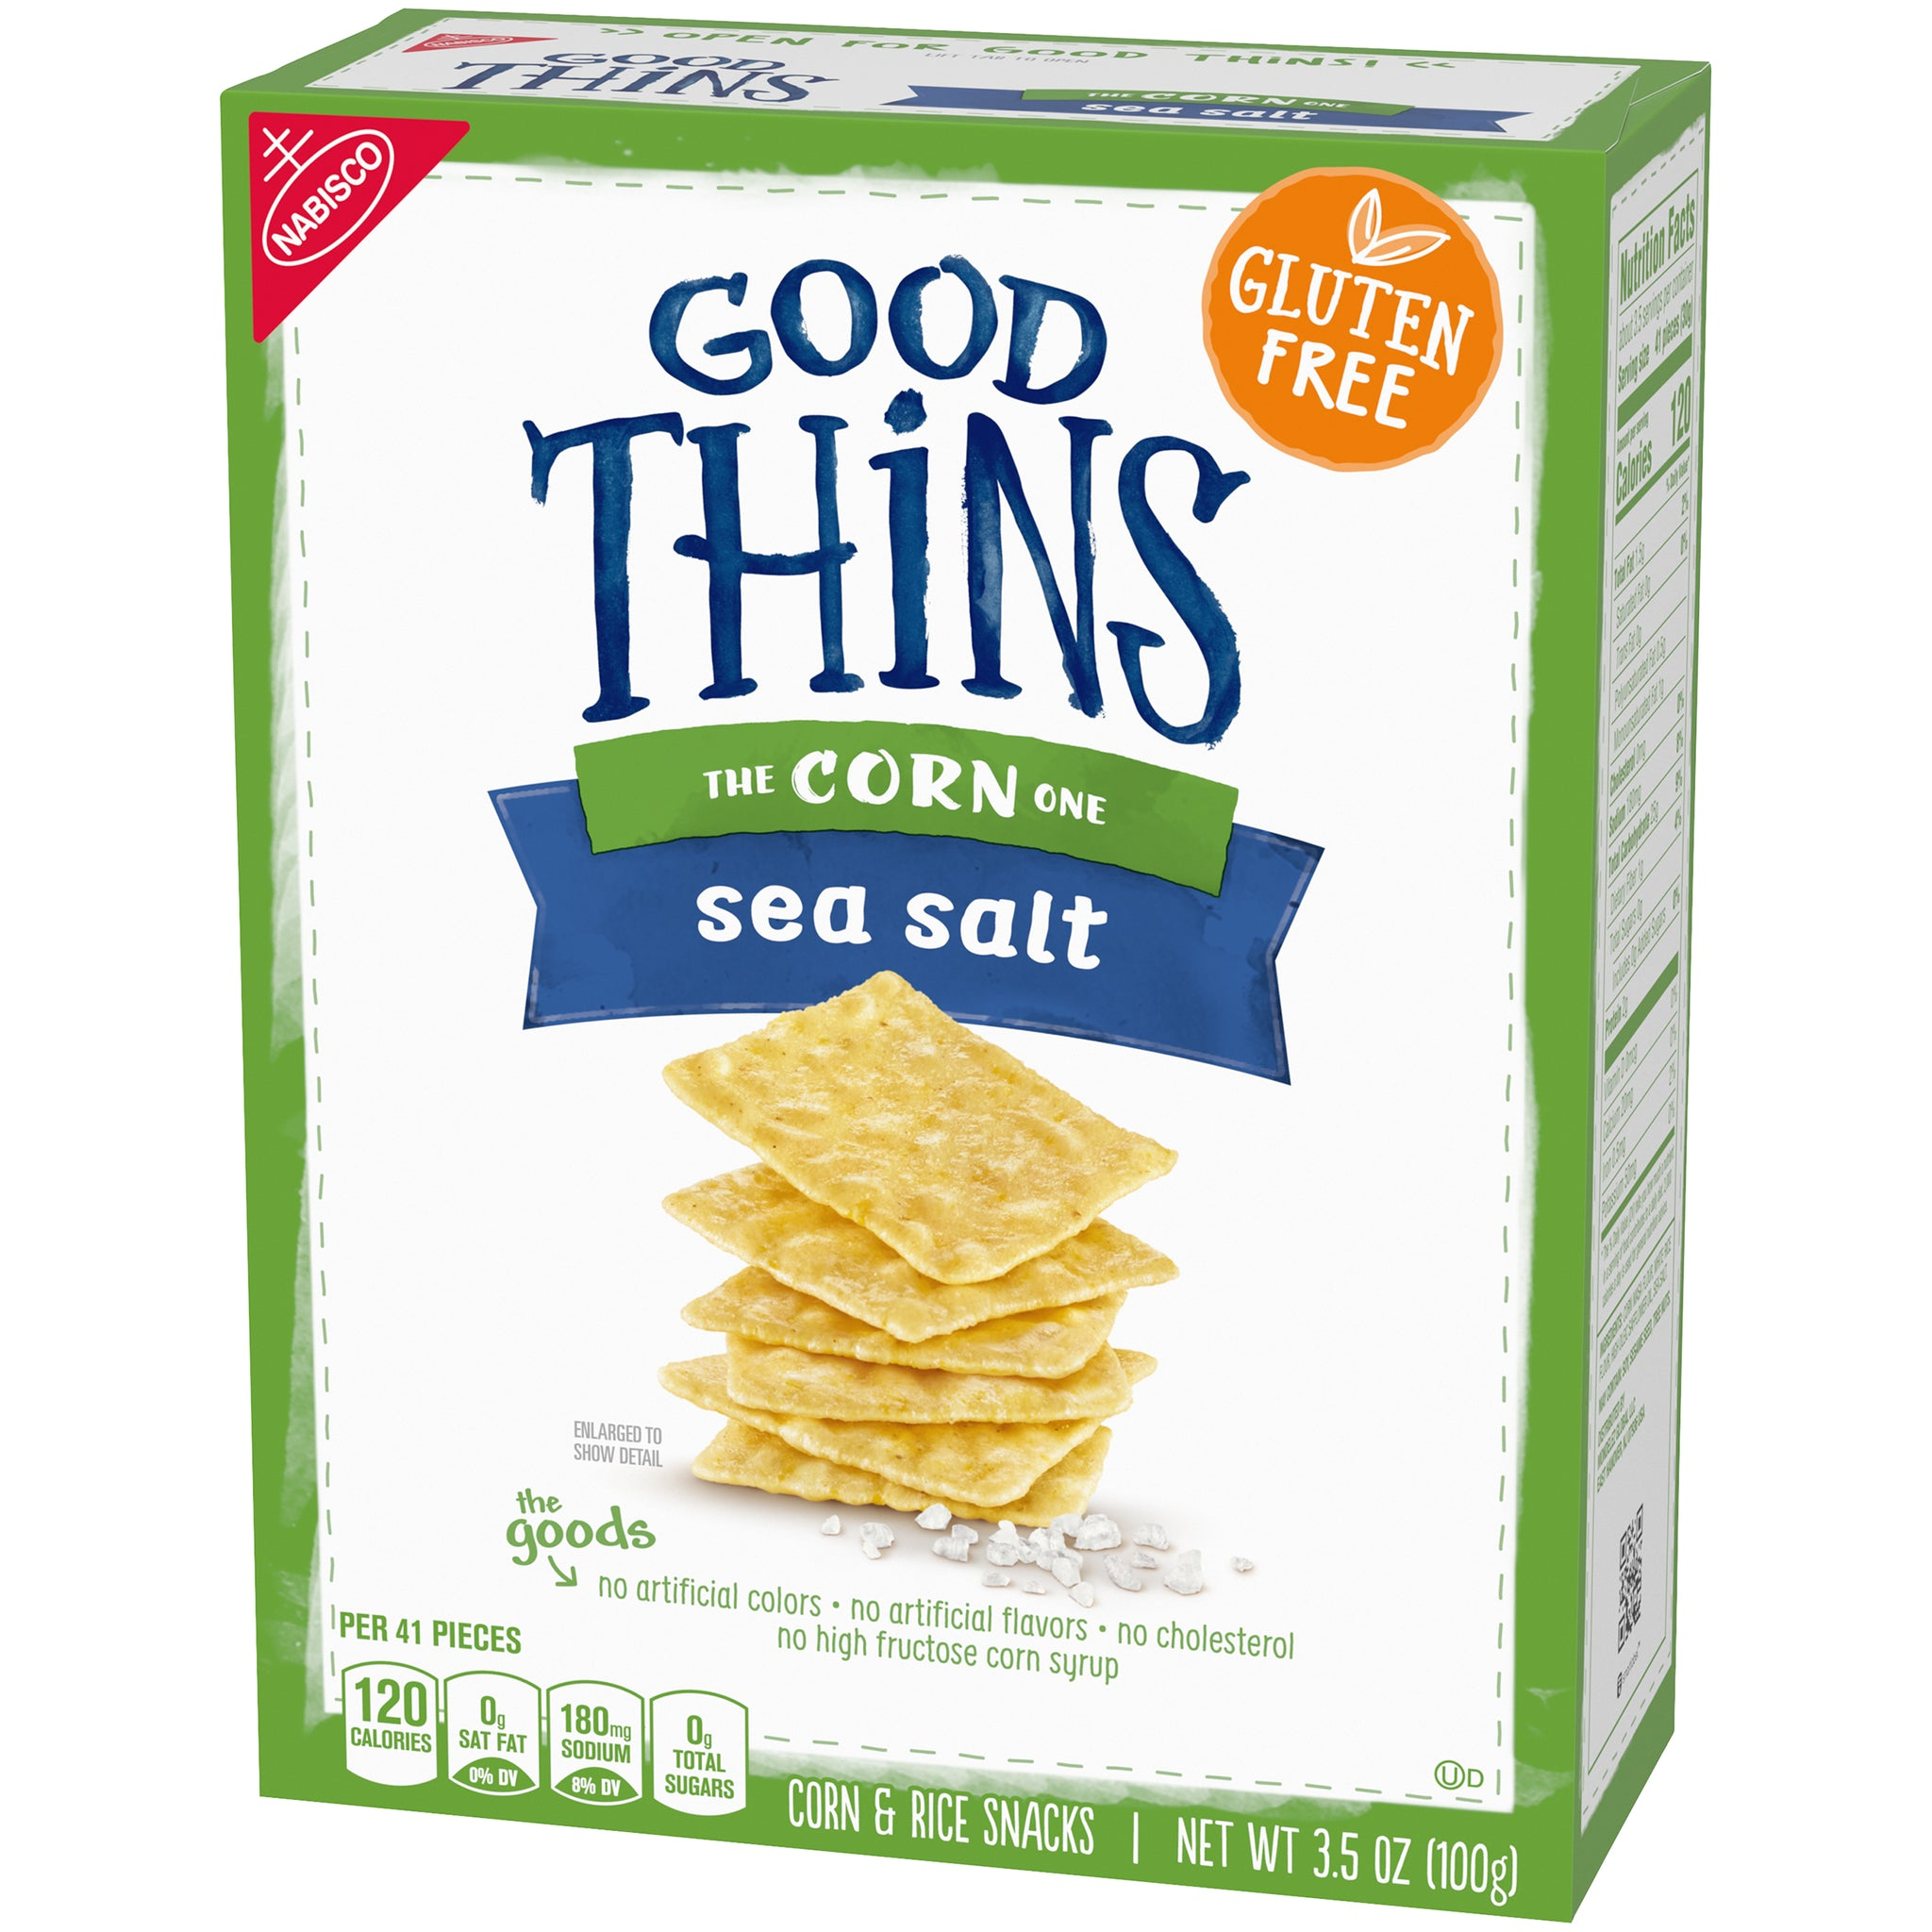 Nabisco Good Thins, Gluten Free Corn & Rice Crackers, Sea Salt, 3.5 Oz.